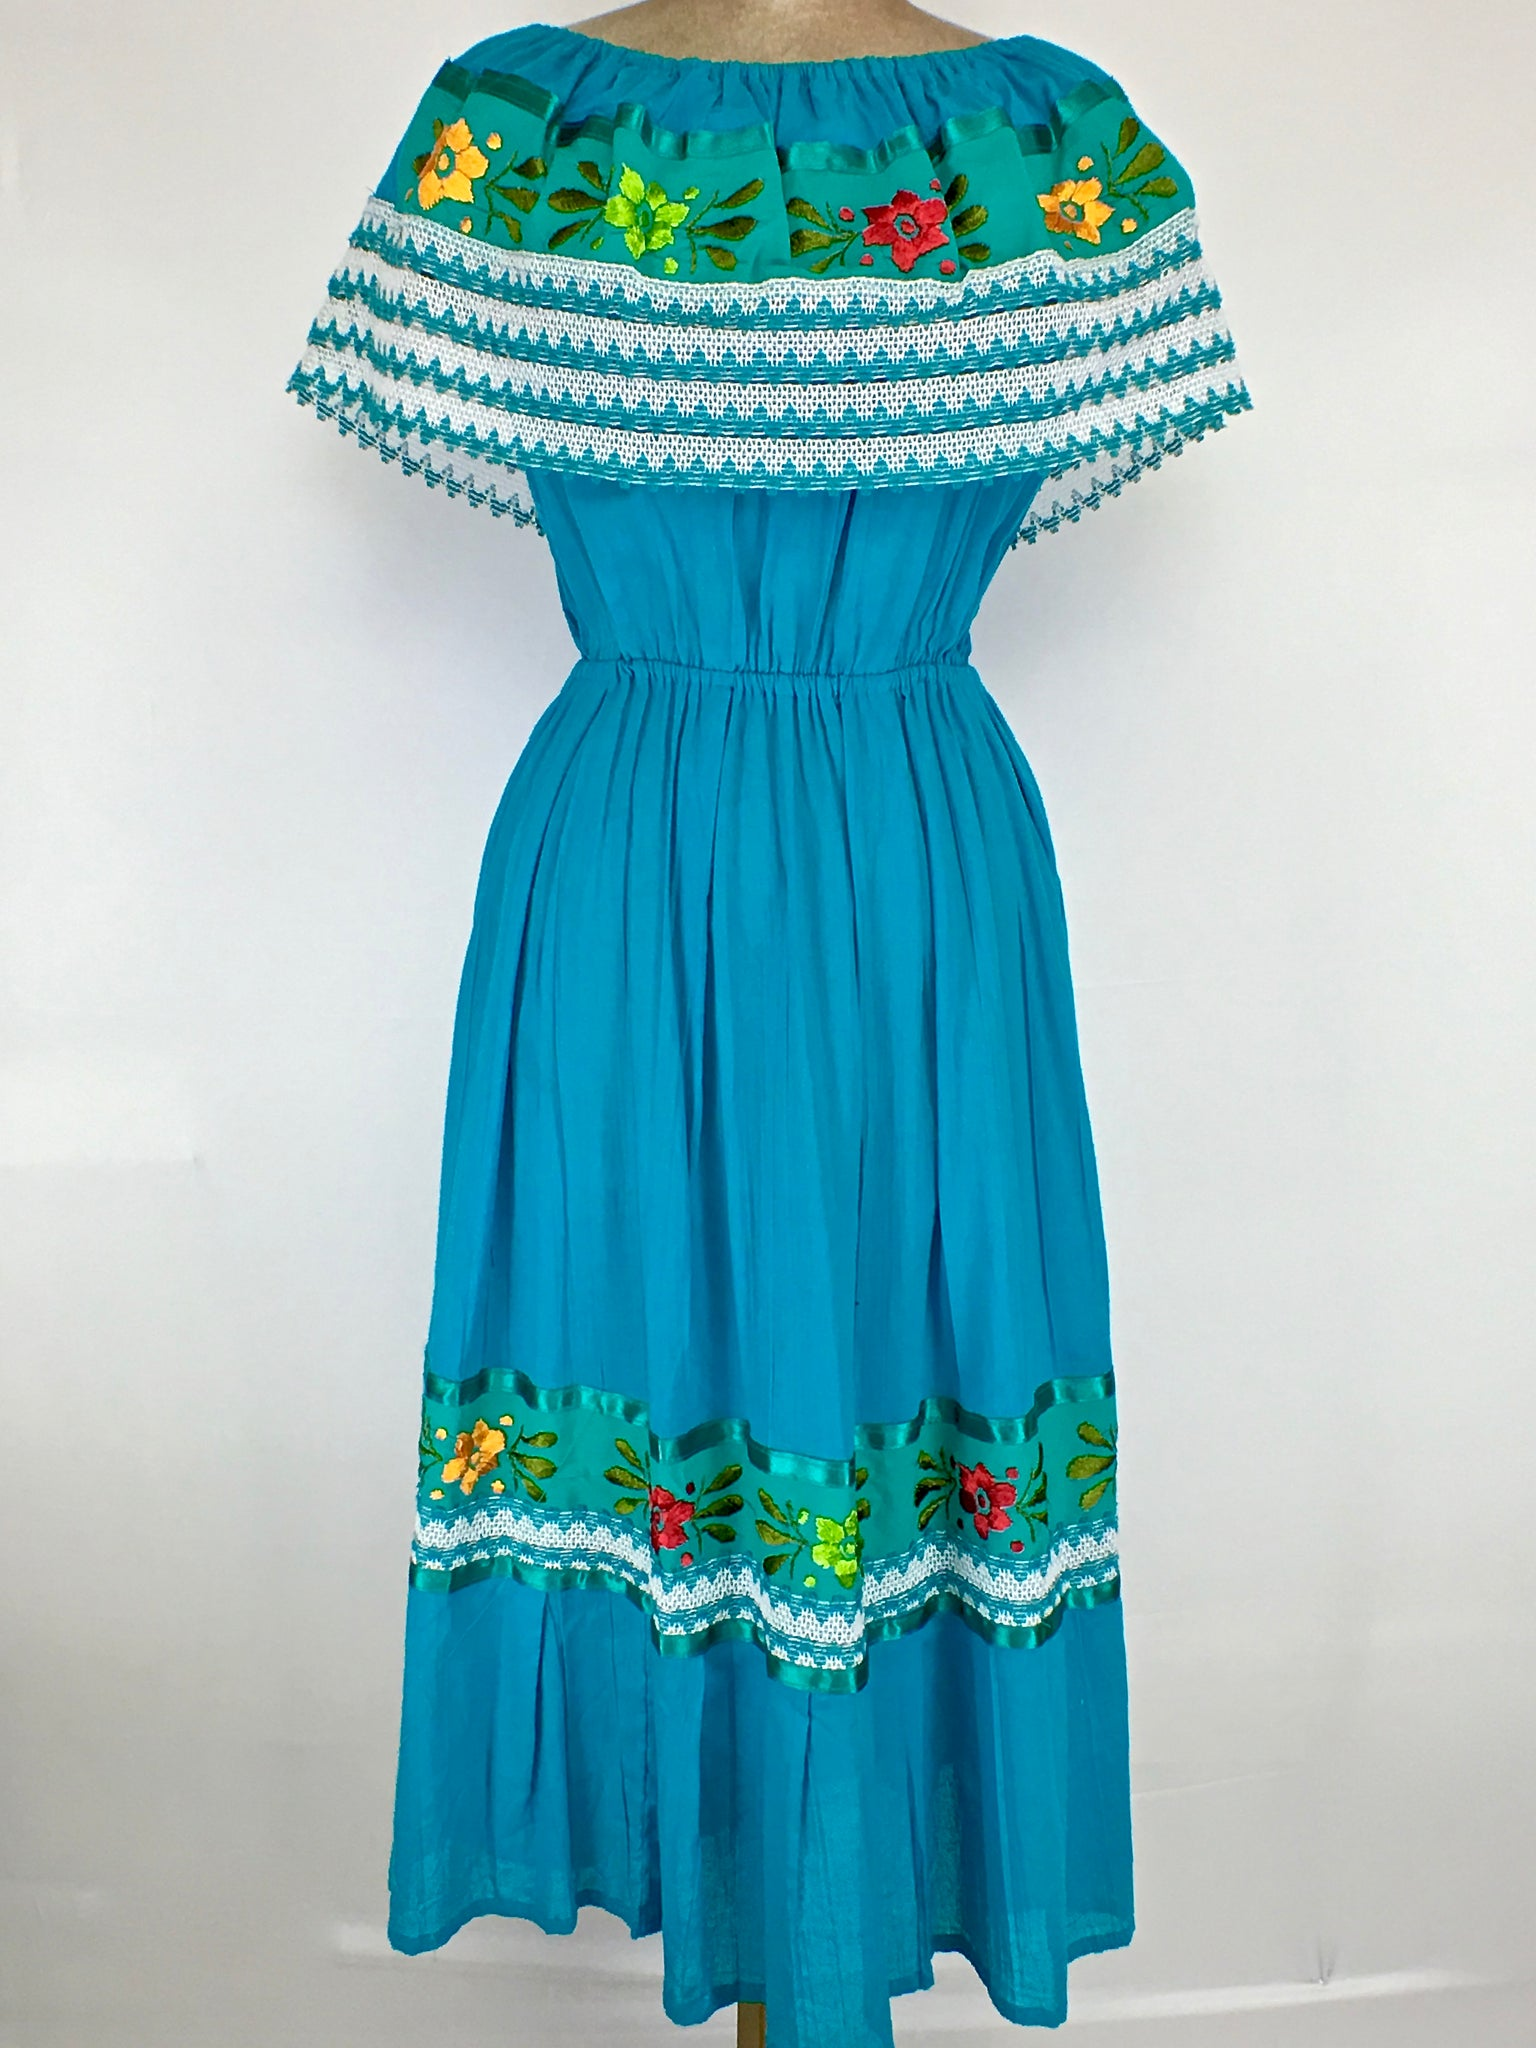 Teal Mexican Dress ONE SHOULDER Off Shoulder Embroidered One Size Fits S through XL